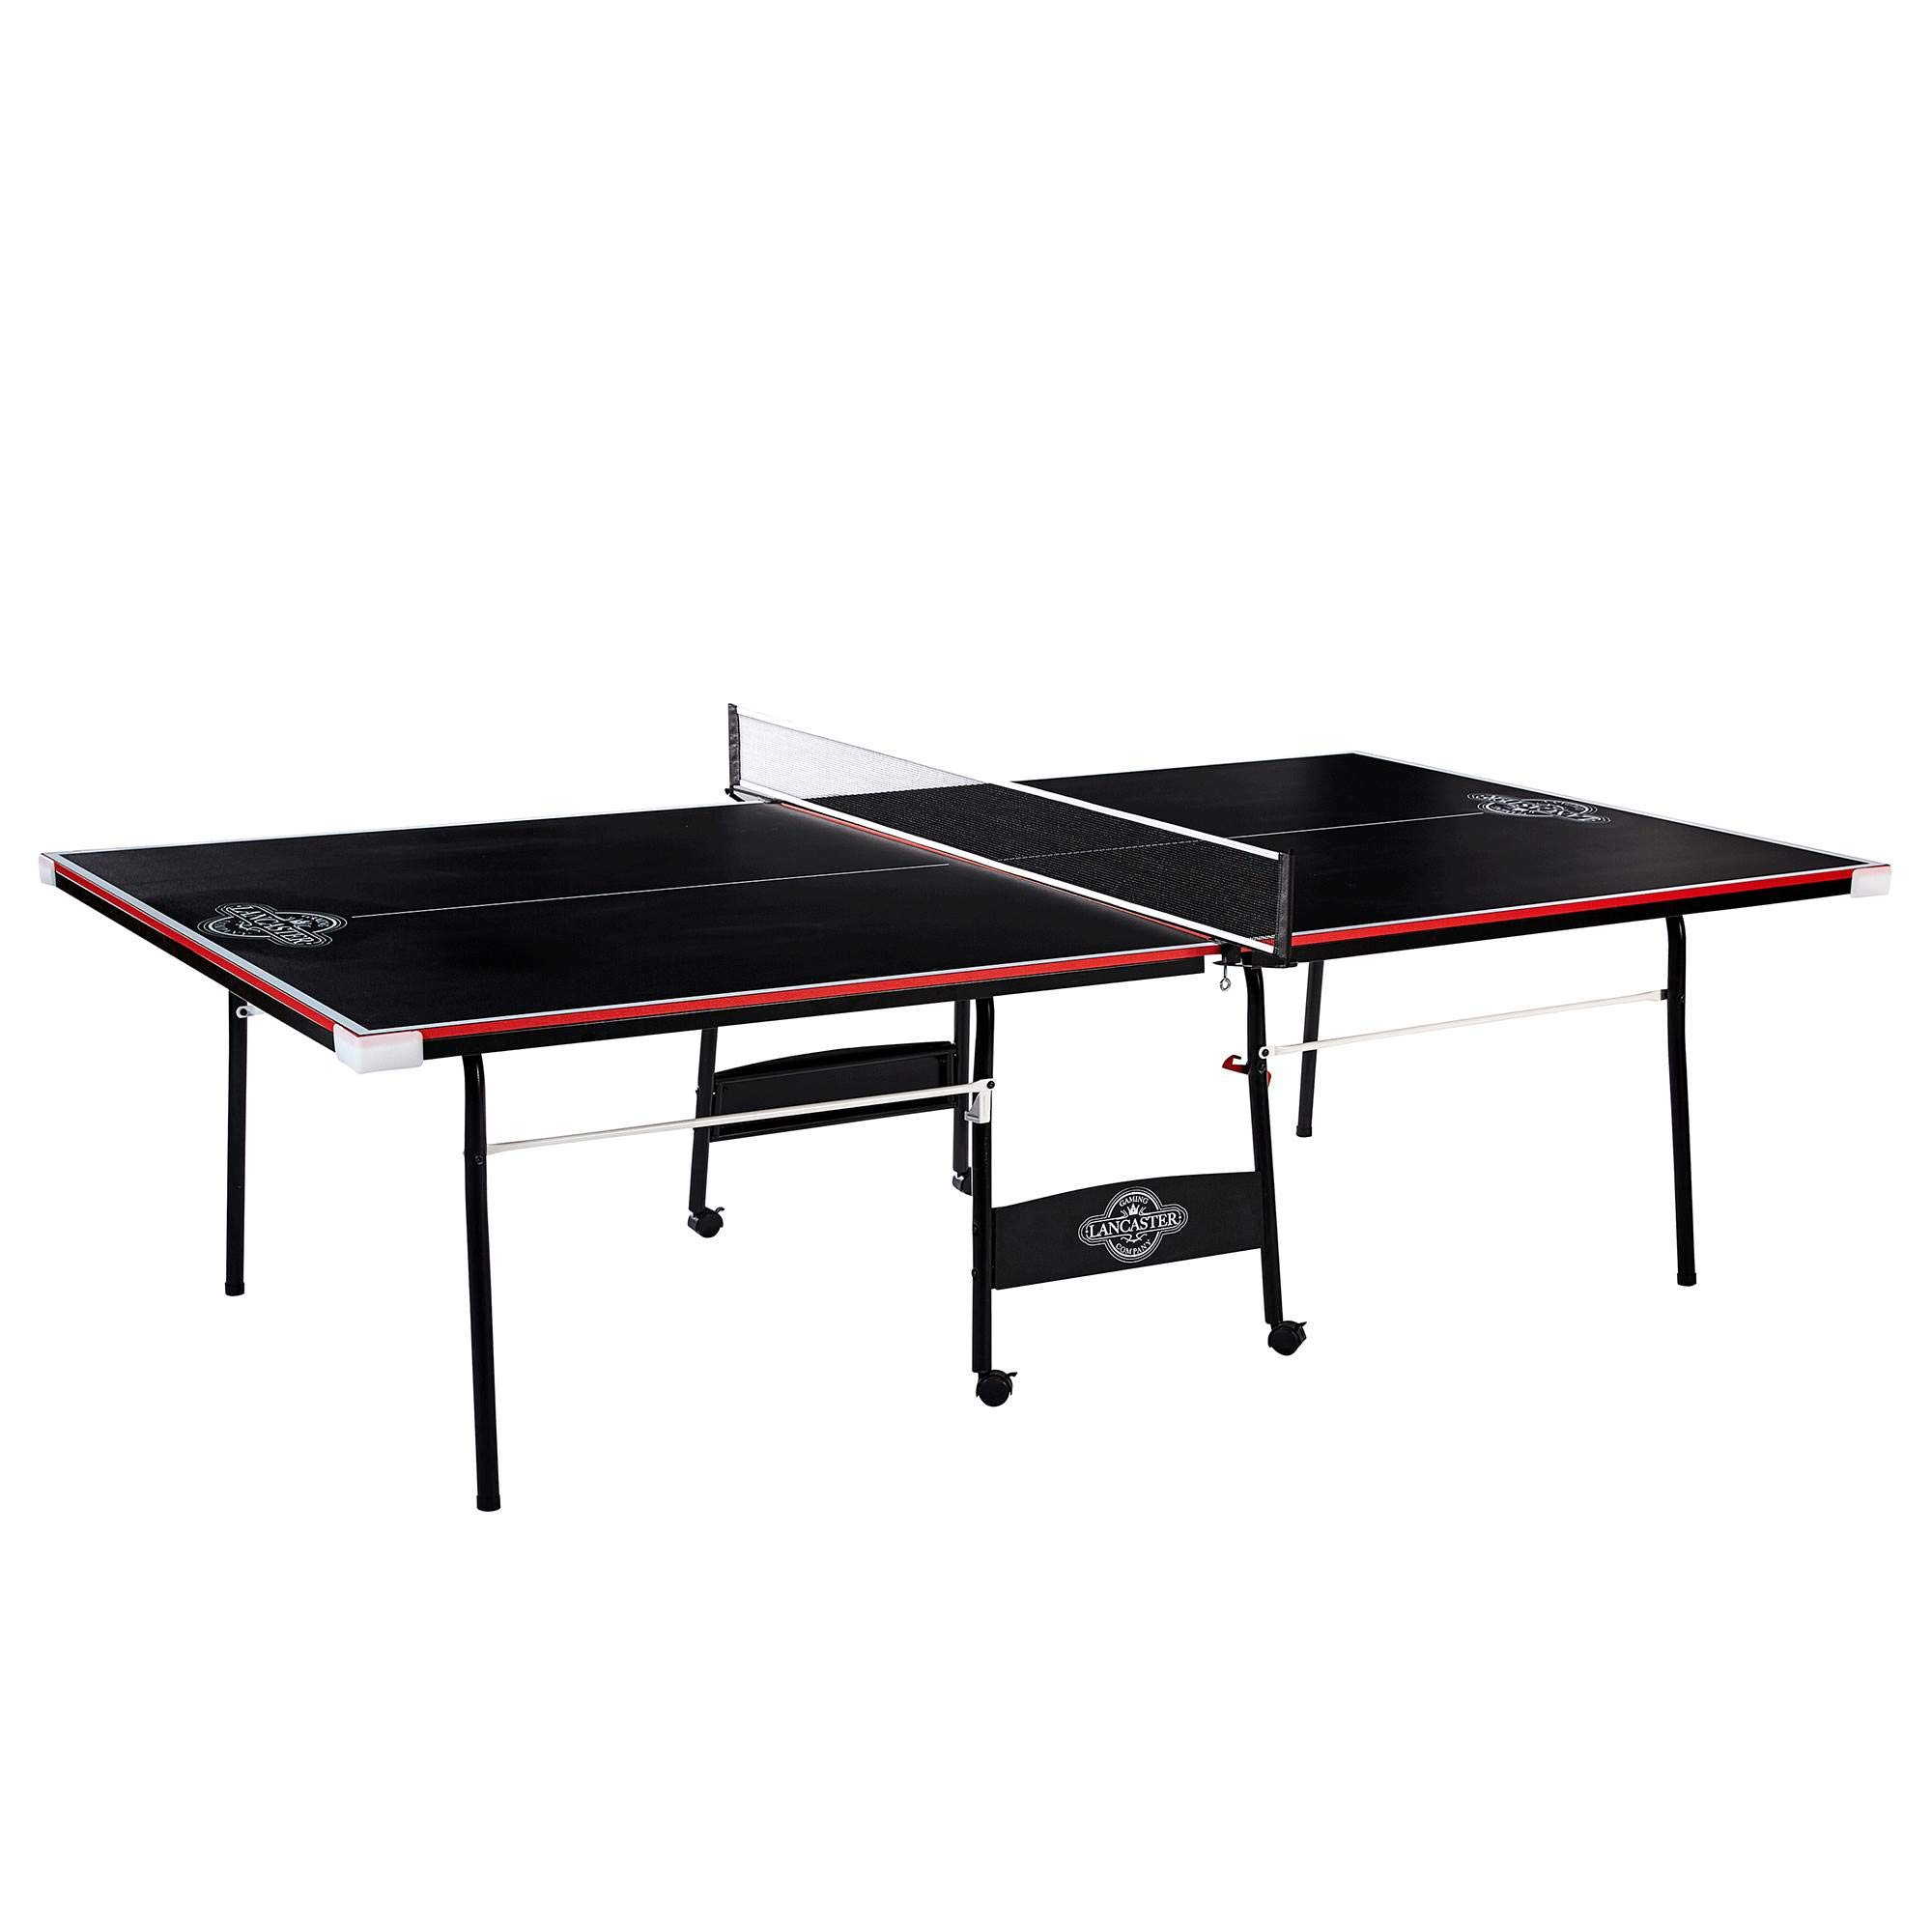 Lancaster 2 Piece Official Size Indoor Folding Table Tennis Ping Pong Game Table by Lancaster Gaming Company